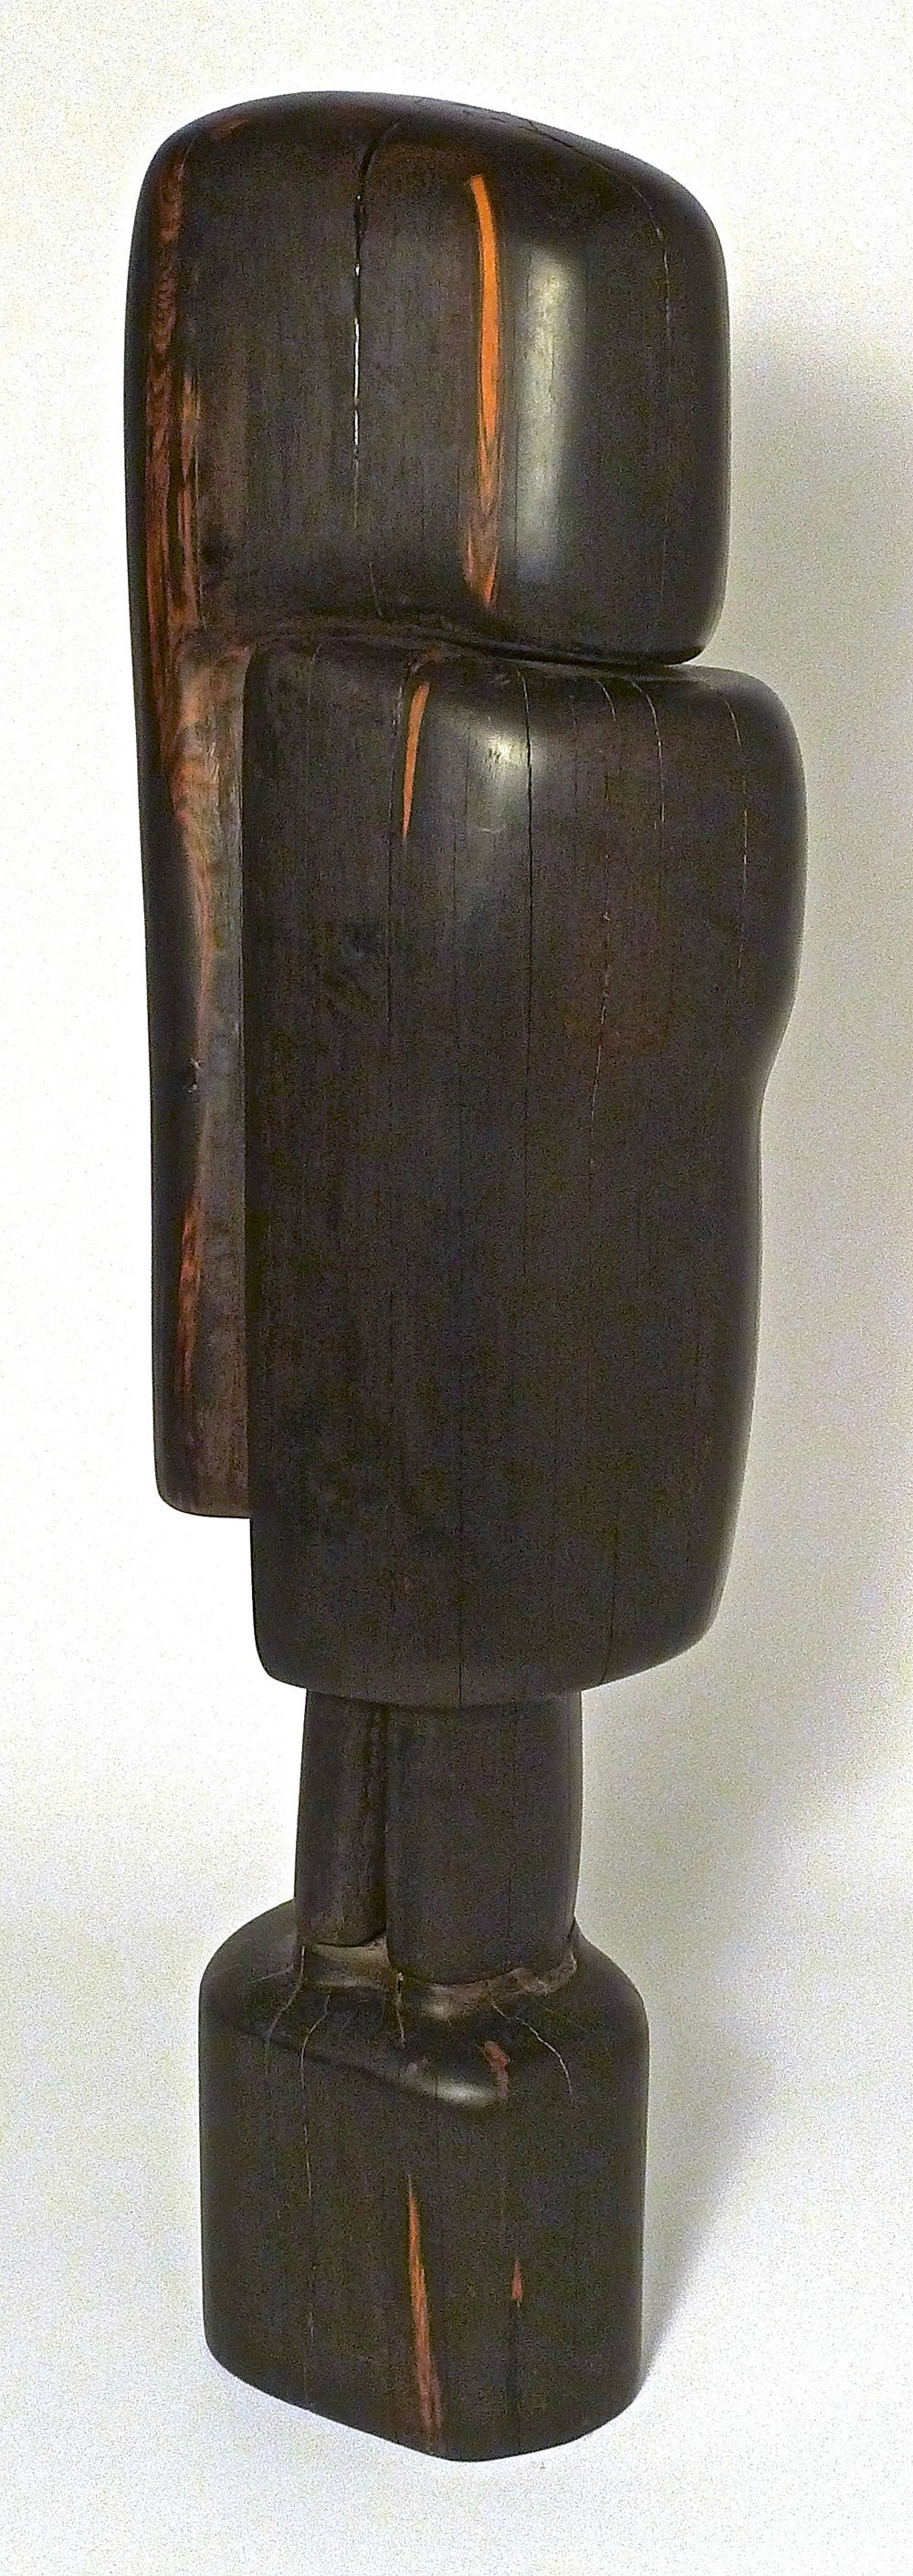 "Monumental and Important Ebony ""Affiniti"" Sculpture by Gino Cosentino 2"